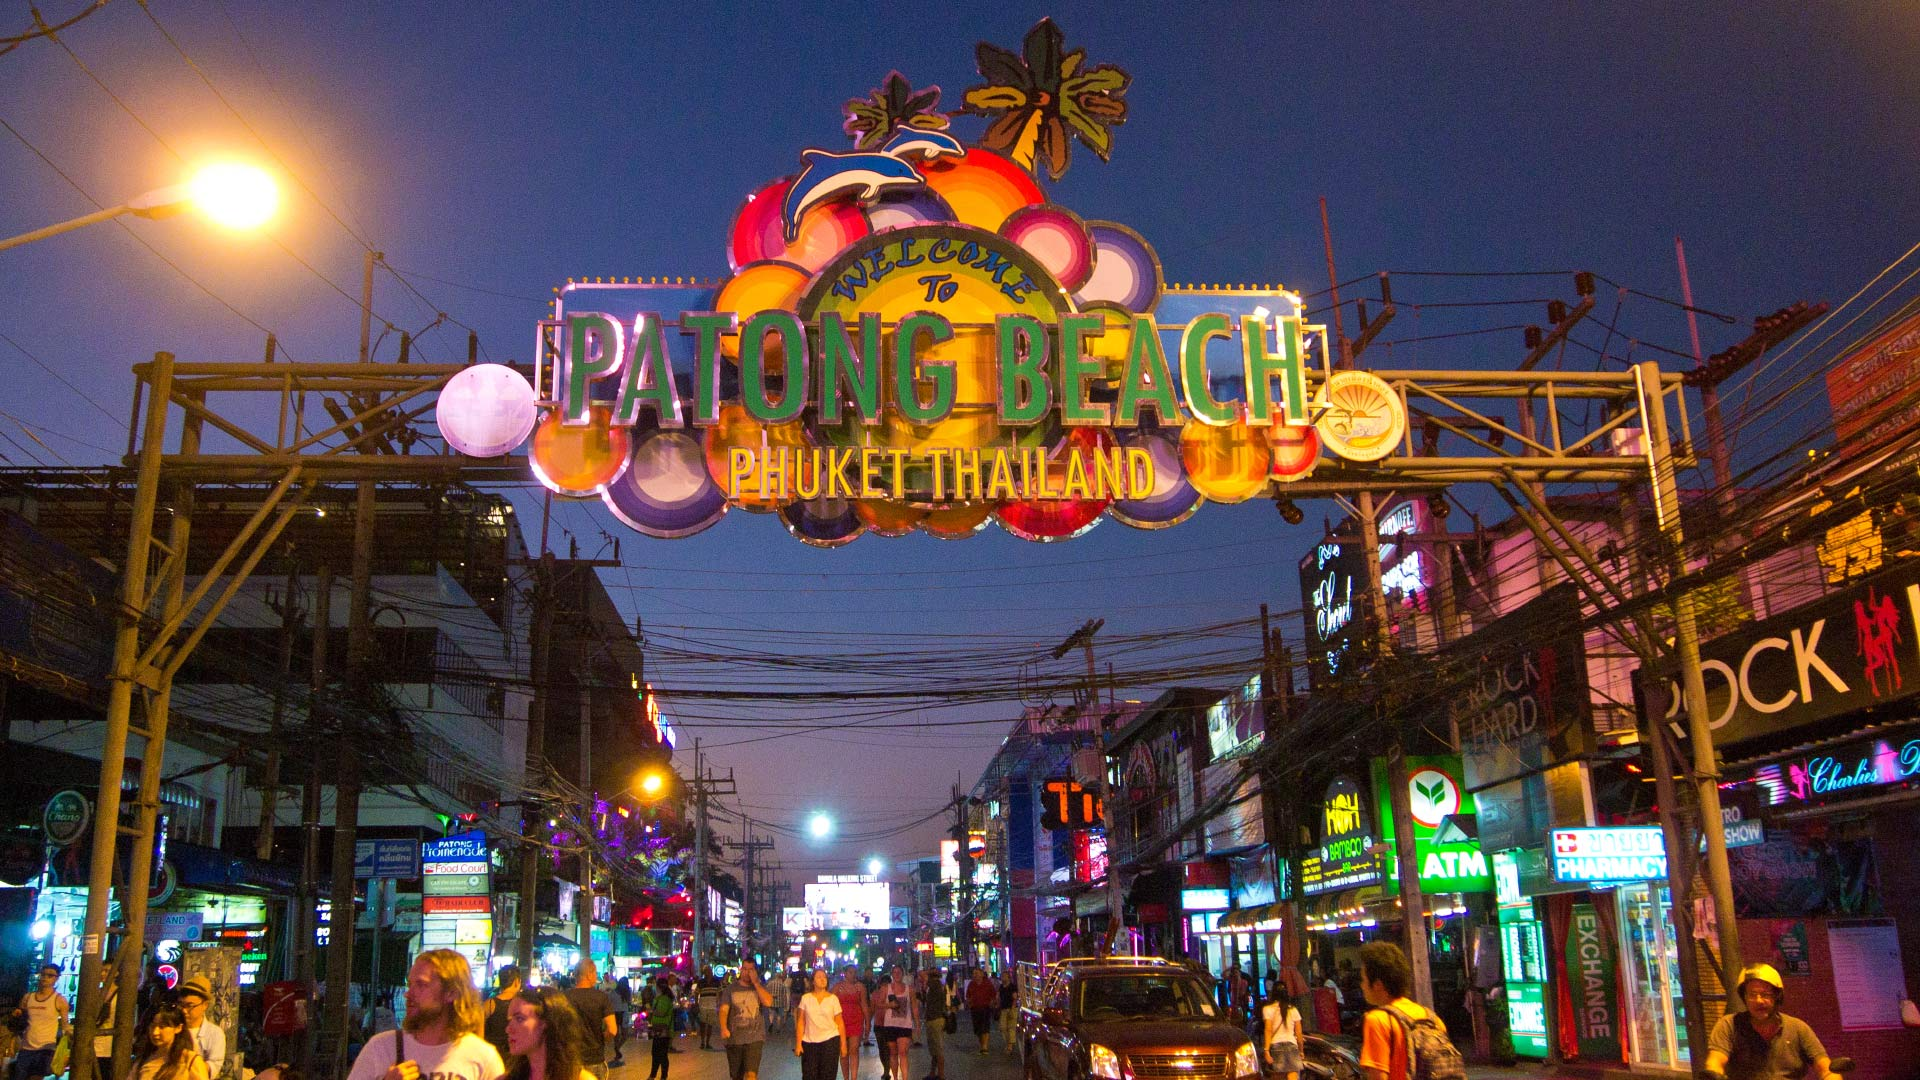 patong nightlife 7 things you need to know travel blog. Black Bedroom Furniture Sets. Home Design Ideas